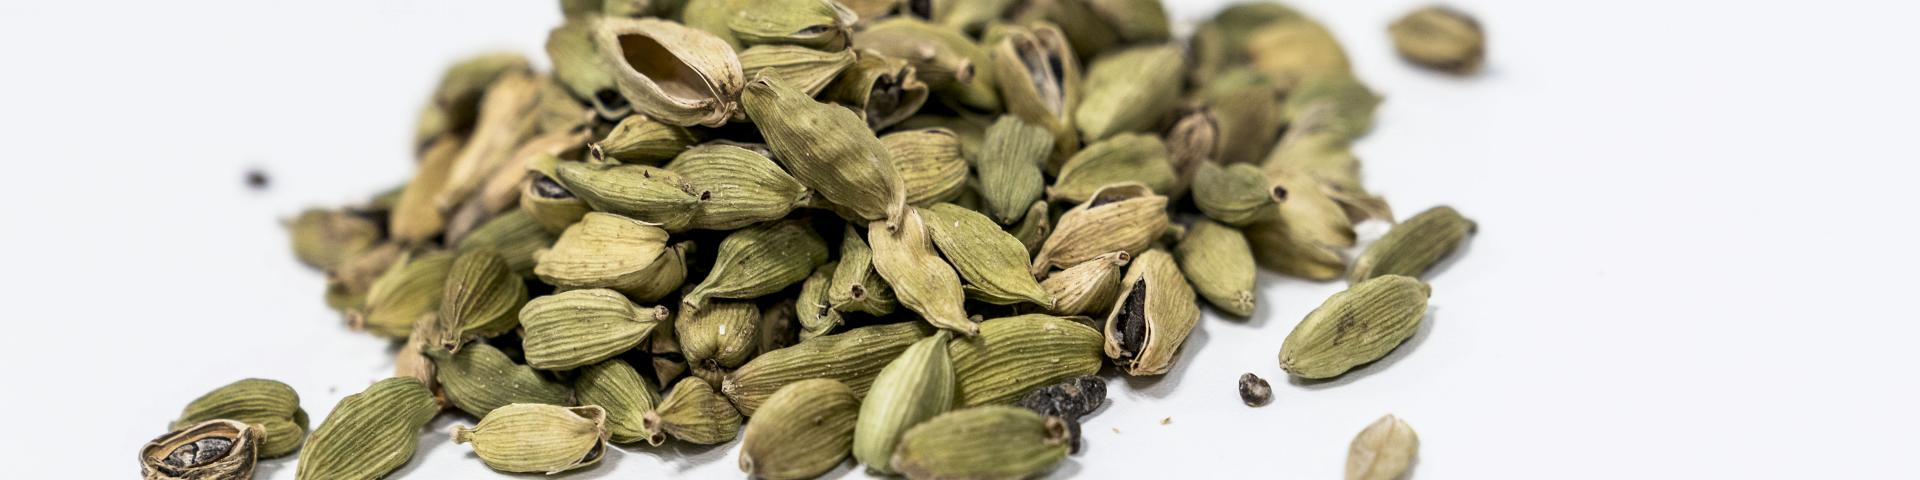 Exporting Cardamom To Europe Cbi Centre For The Promotion Of Imports From Developing Countries